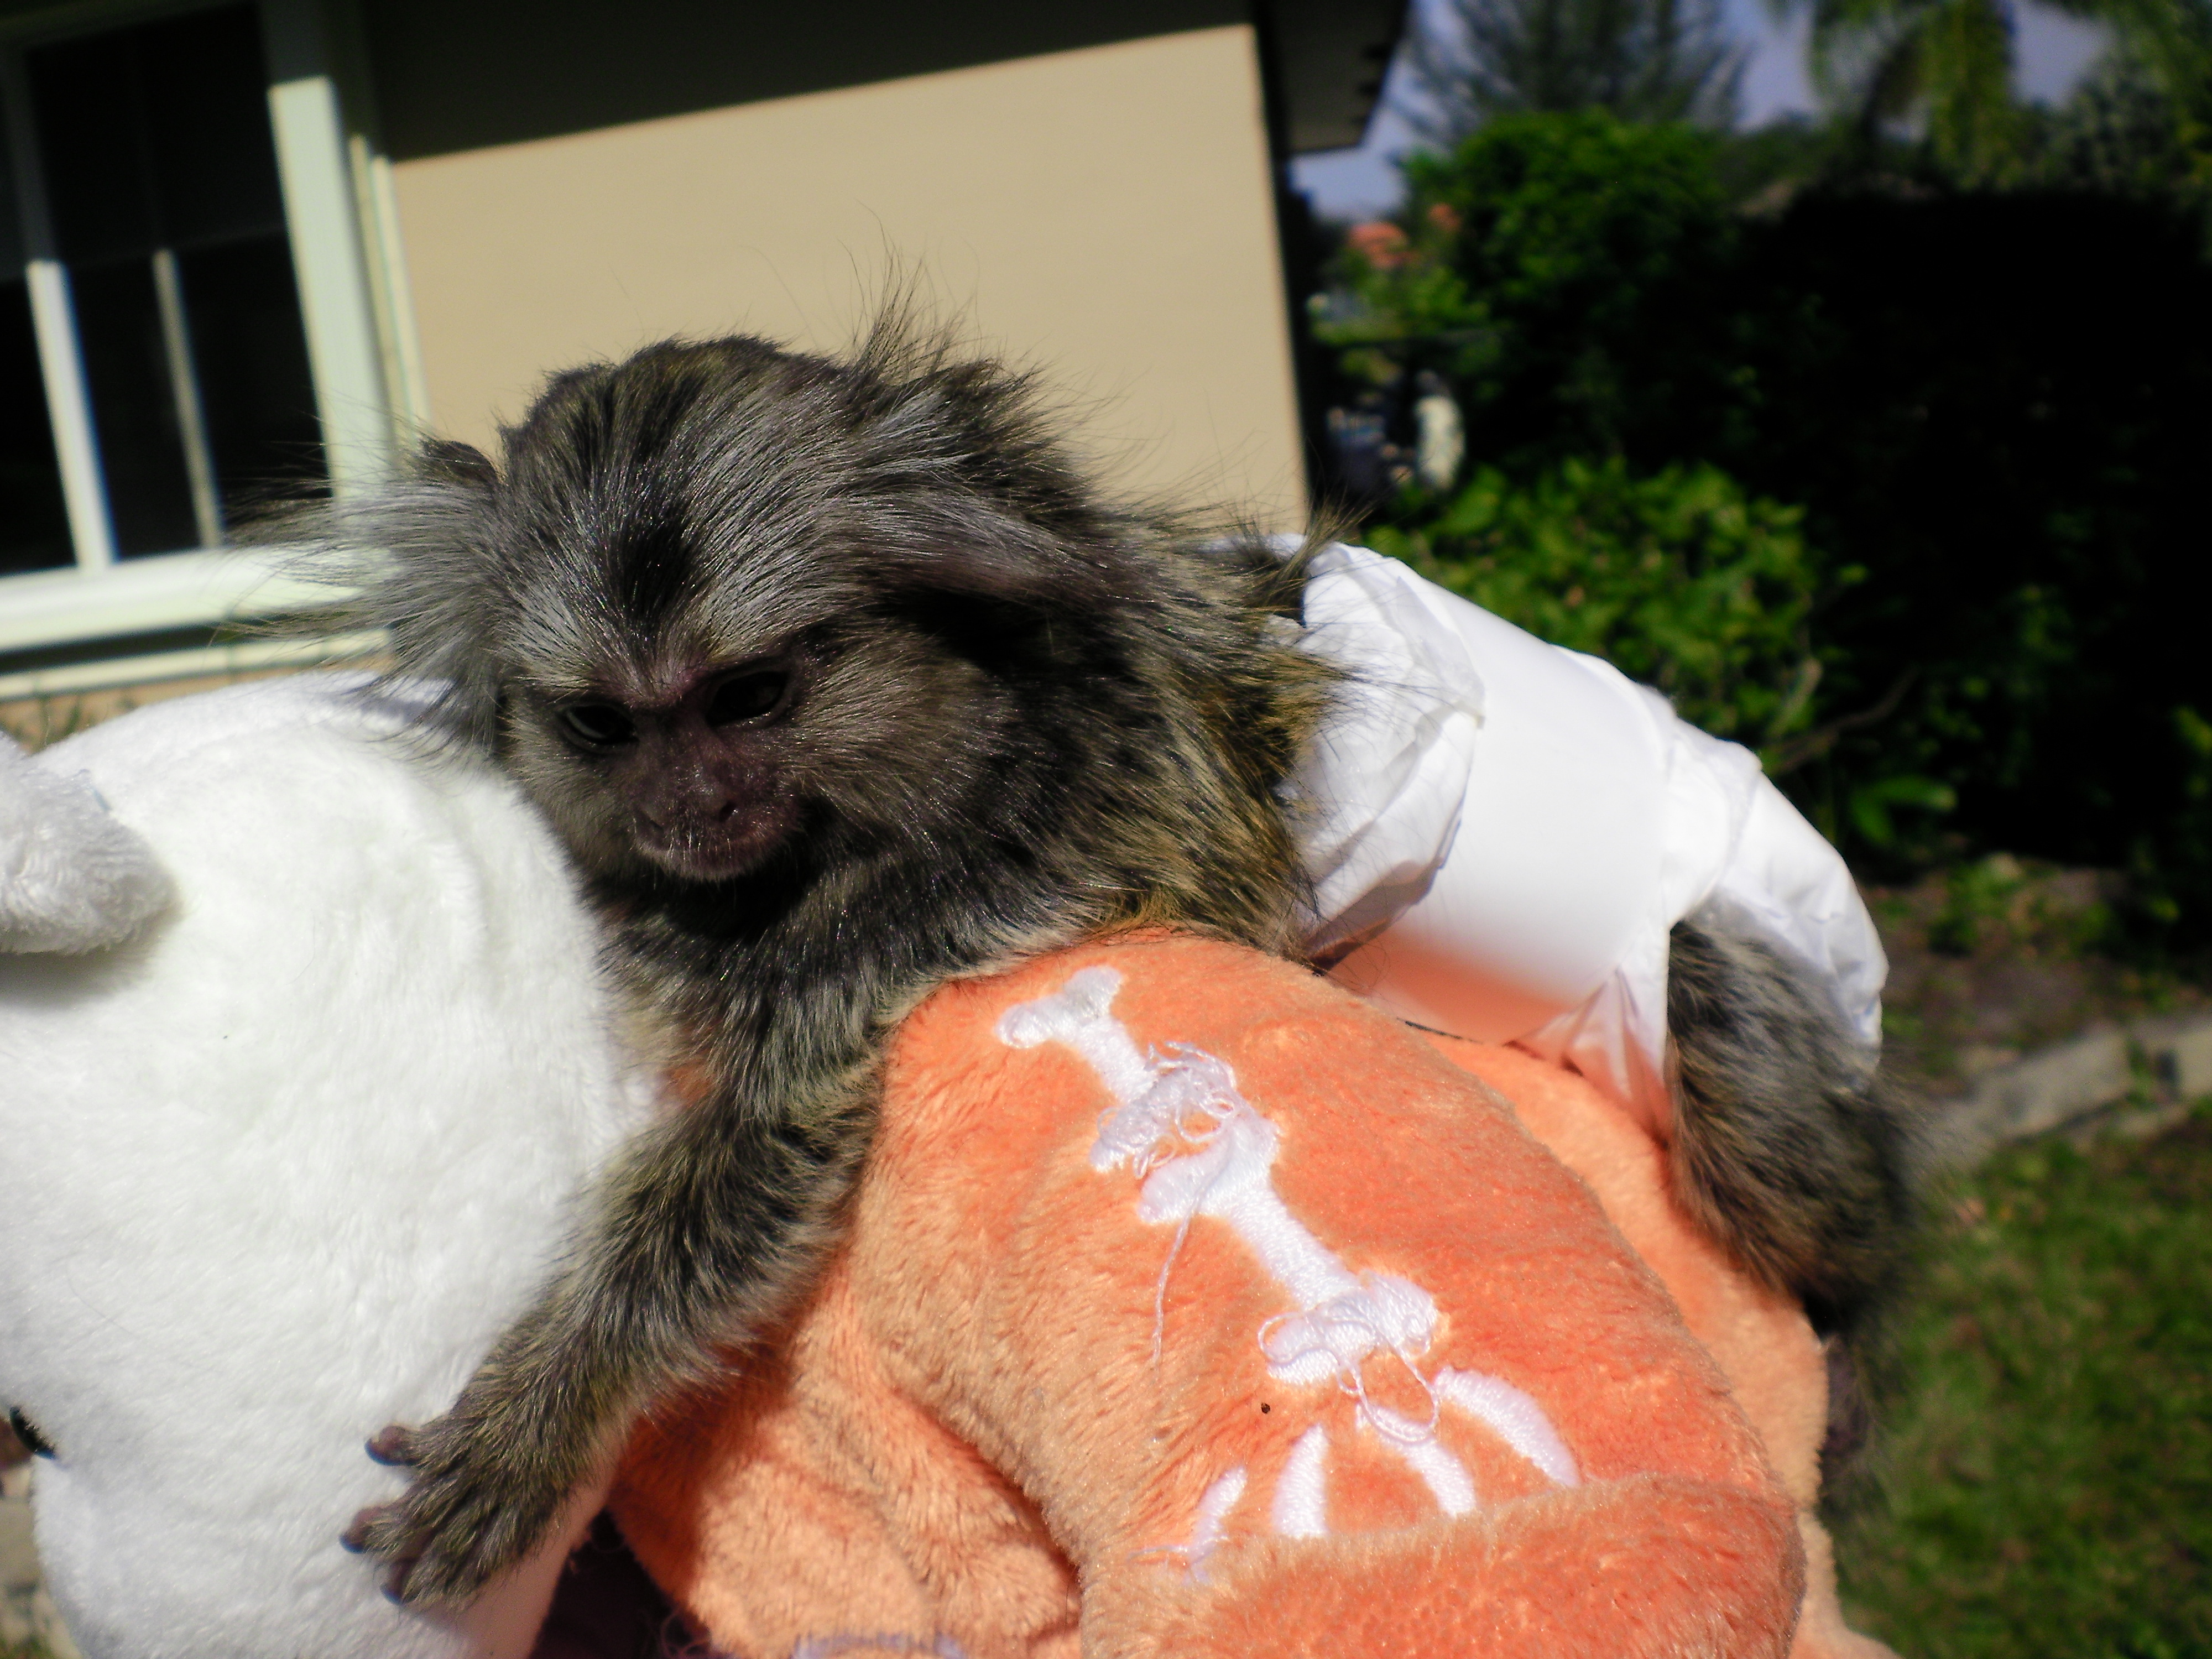 Marmoset Babies For Sale Baby Marmoset in Diapers